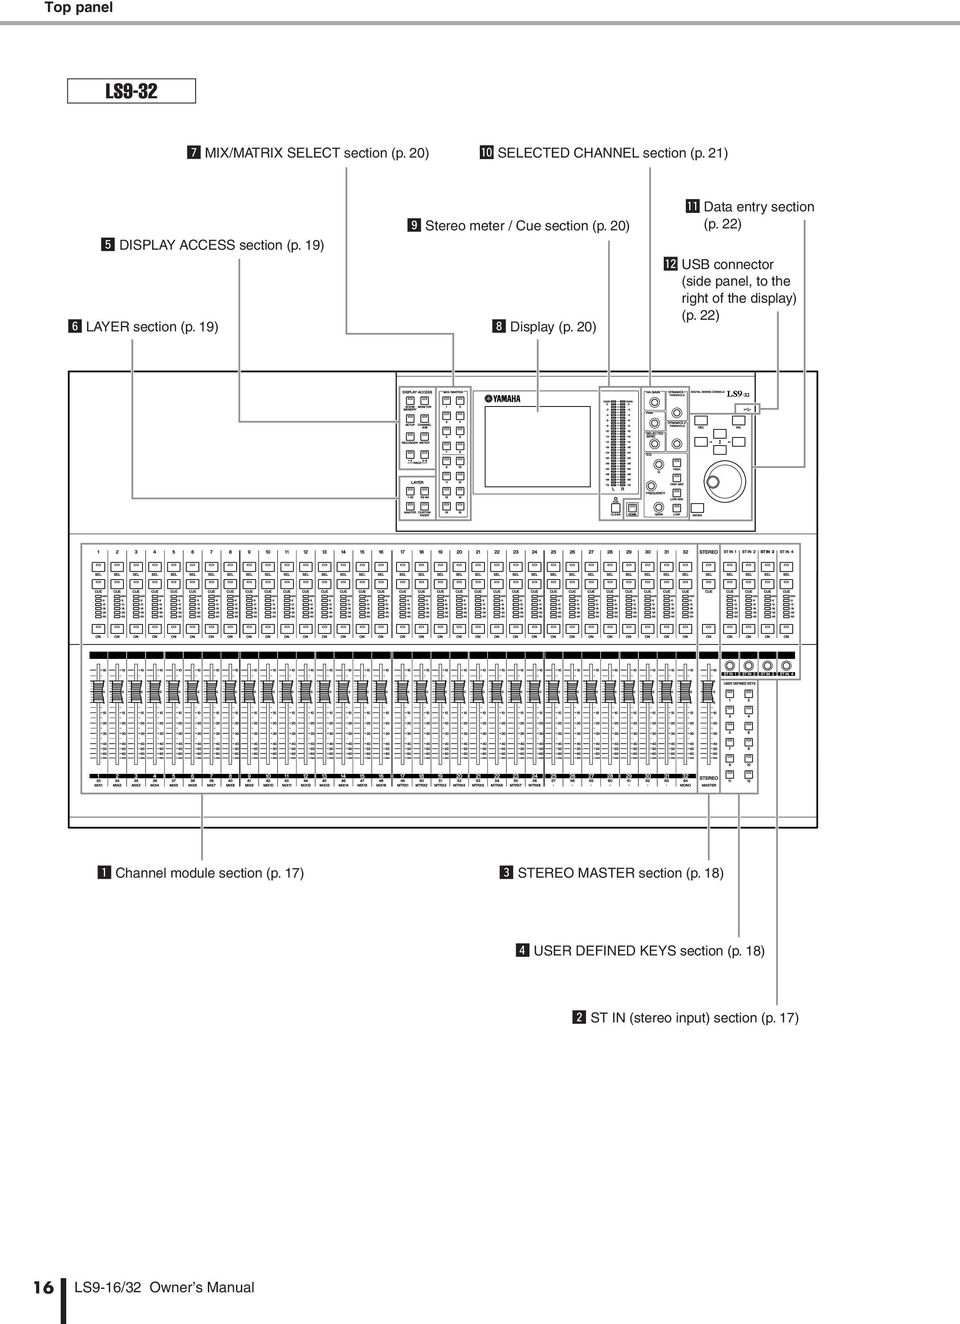 20) 1 Data entry section (p. 22) 2 USB connector (side panel, to the right of the display) (p.